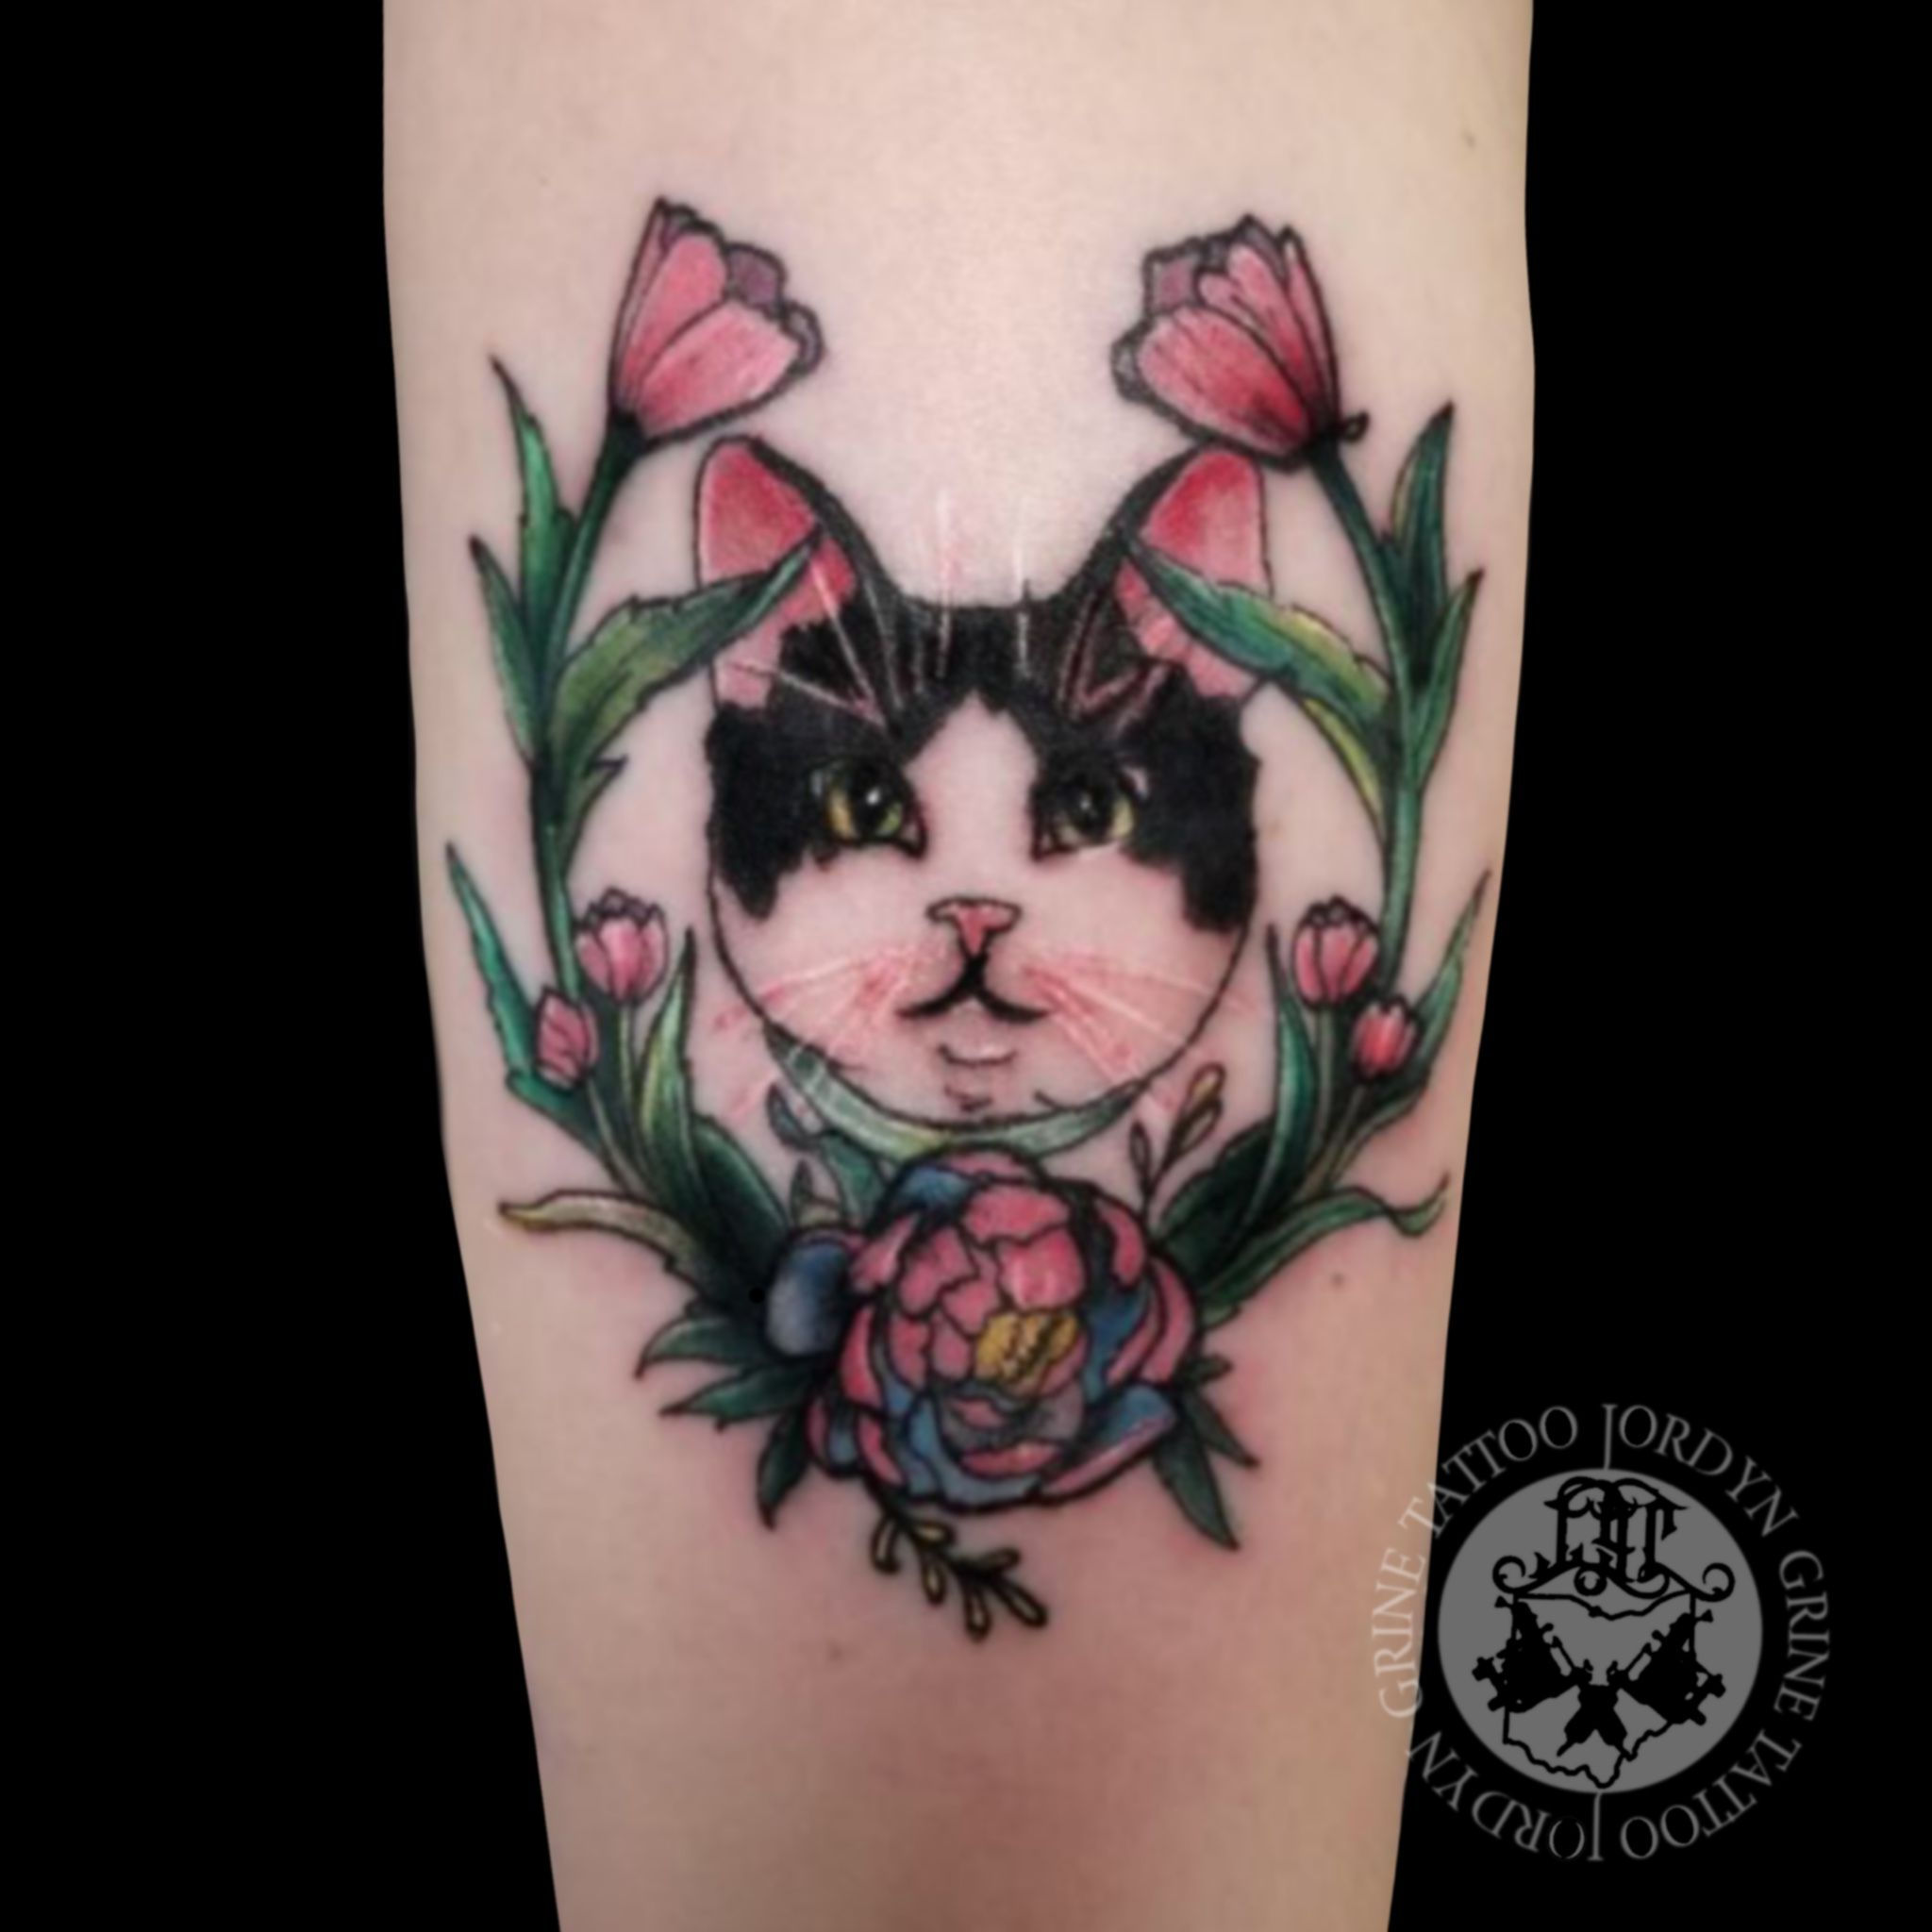 Cat Tattoos Are Always Awesome Check Out This Color Neo Traditional Cat In Floral Reef Frame Tattoo By Jordyn Grine Tattoo At Framed Tattoo Tattoos Body Art